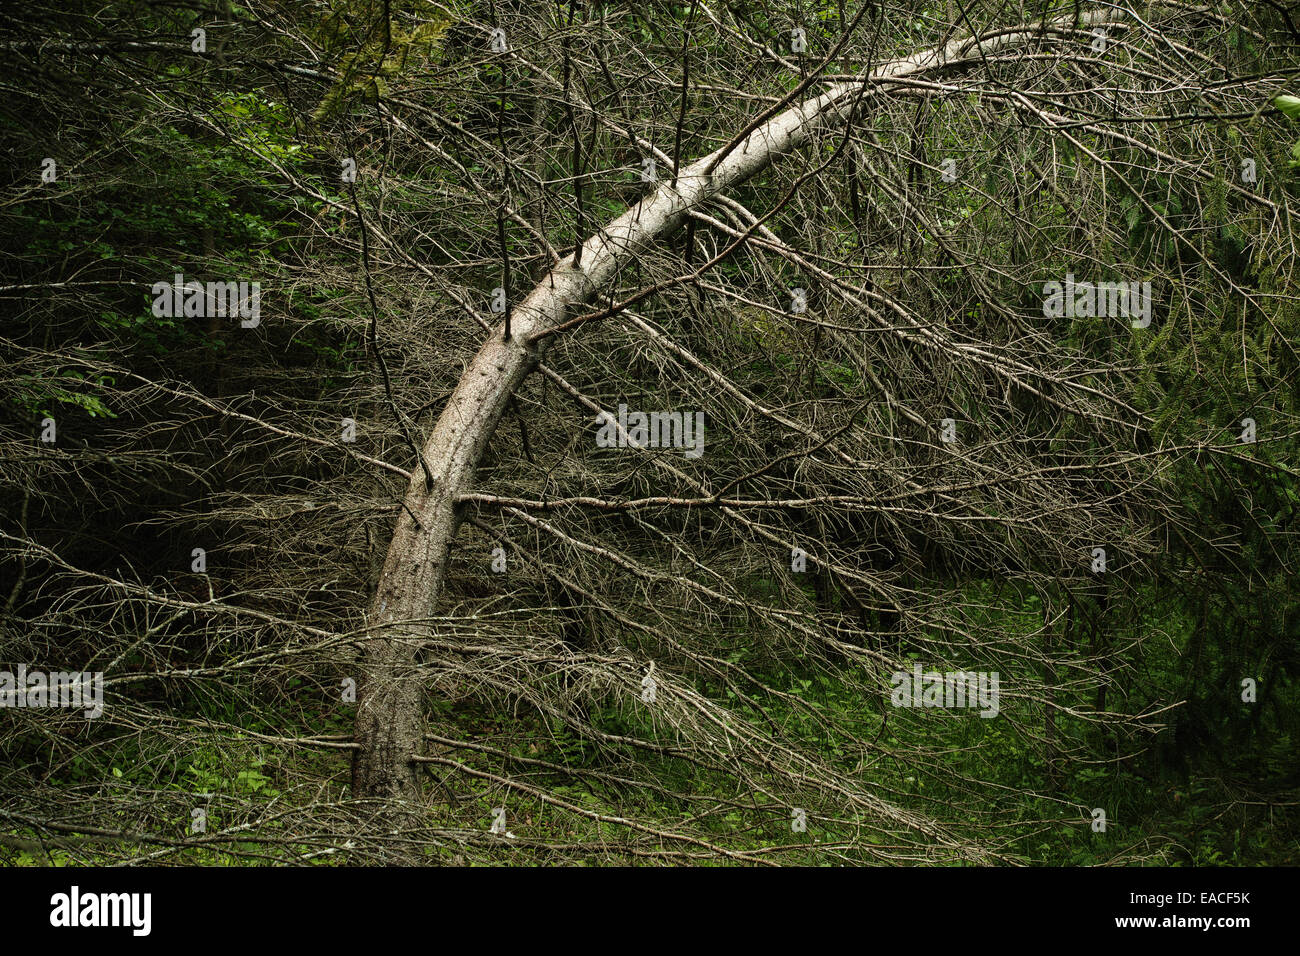 A spruce tree has an unusual lean in a forest. - Stock Image